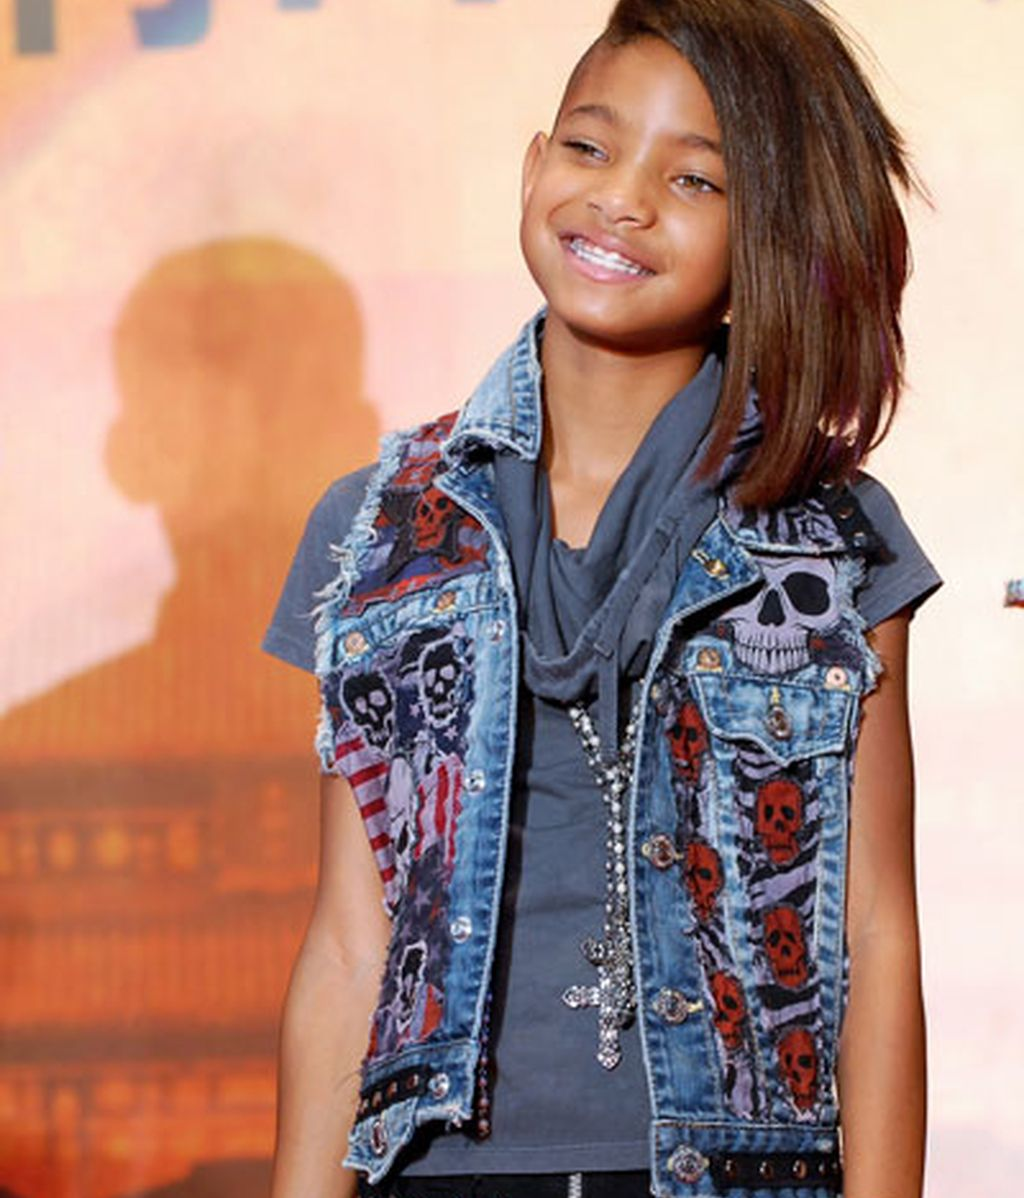 Willow Smith o cómo ser una it girl